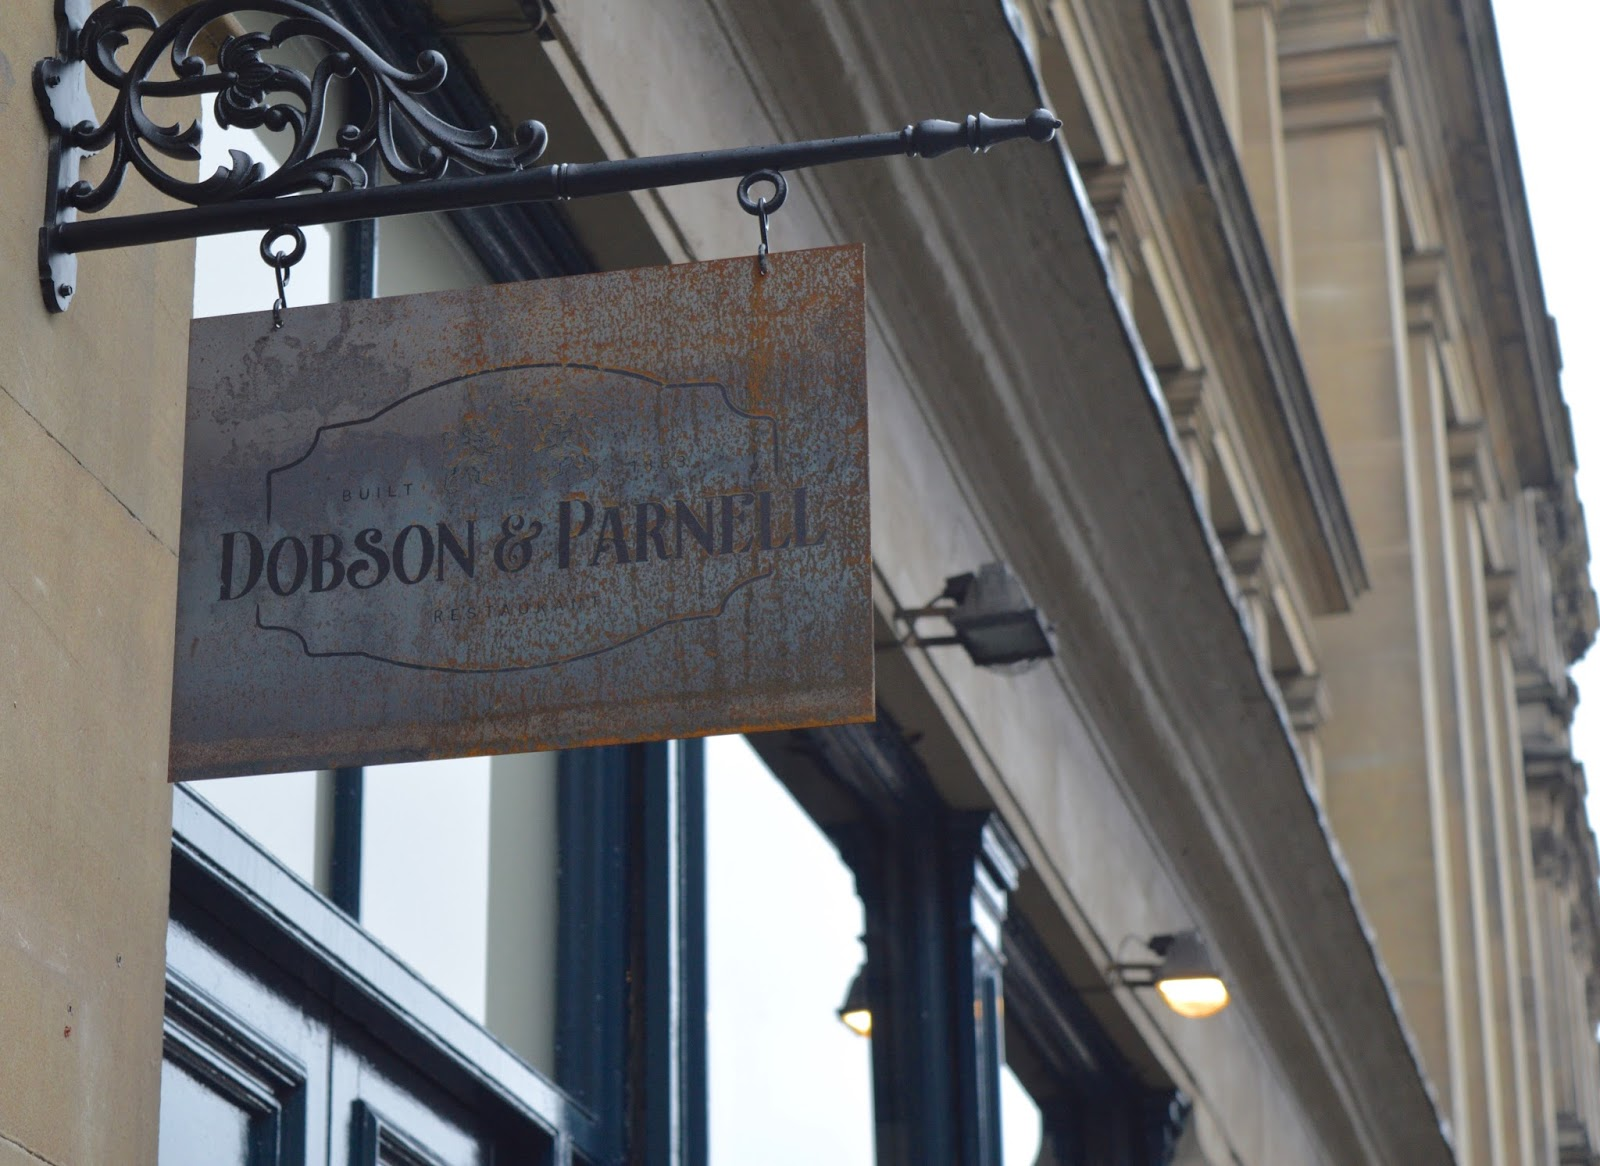 Dobson and Parnell Newcastle Menu Review  - exterior sign